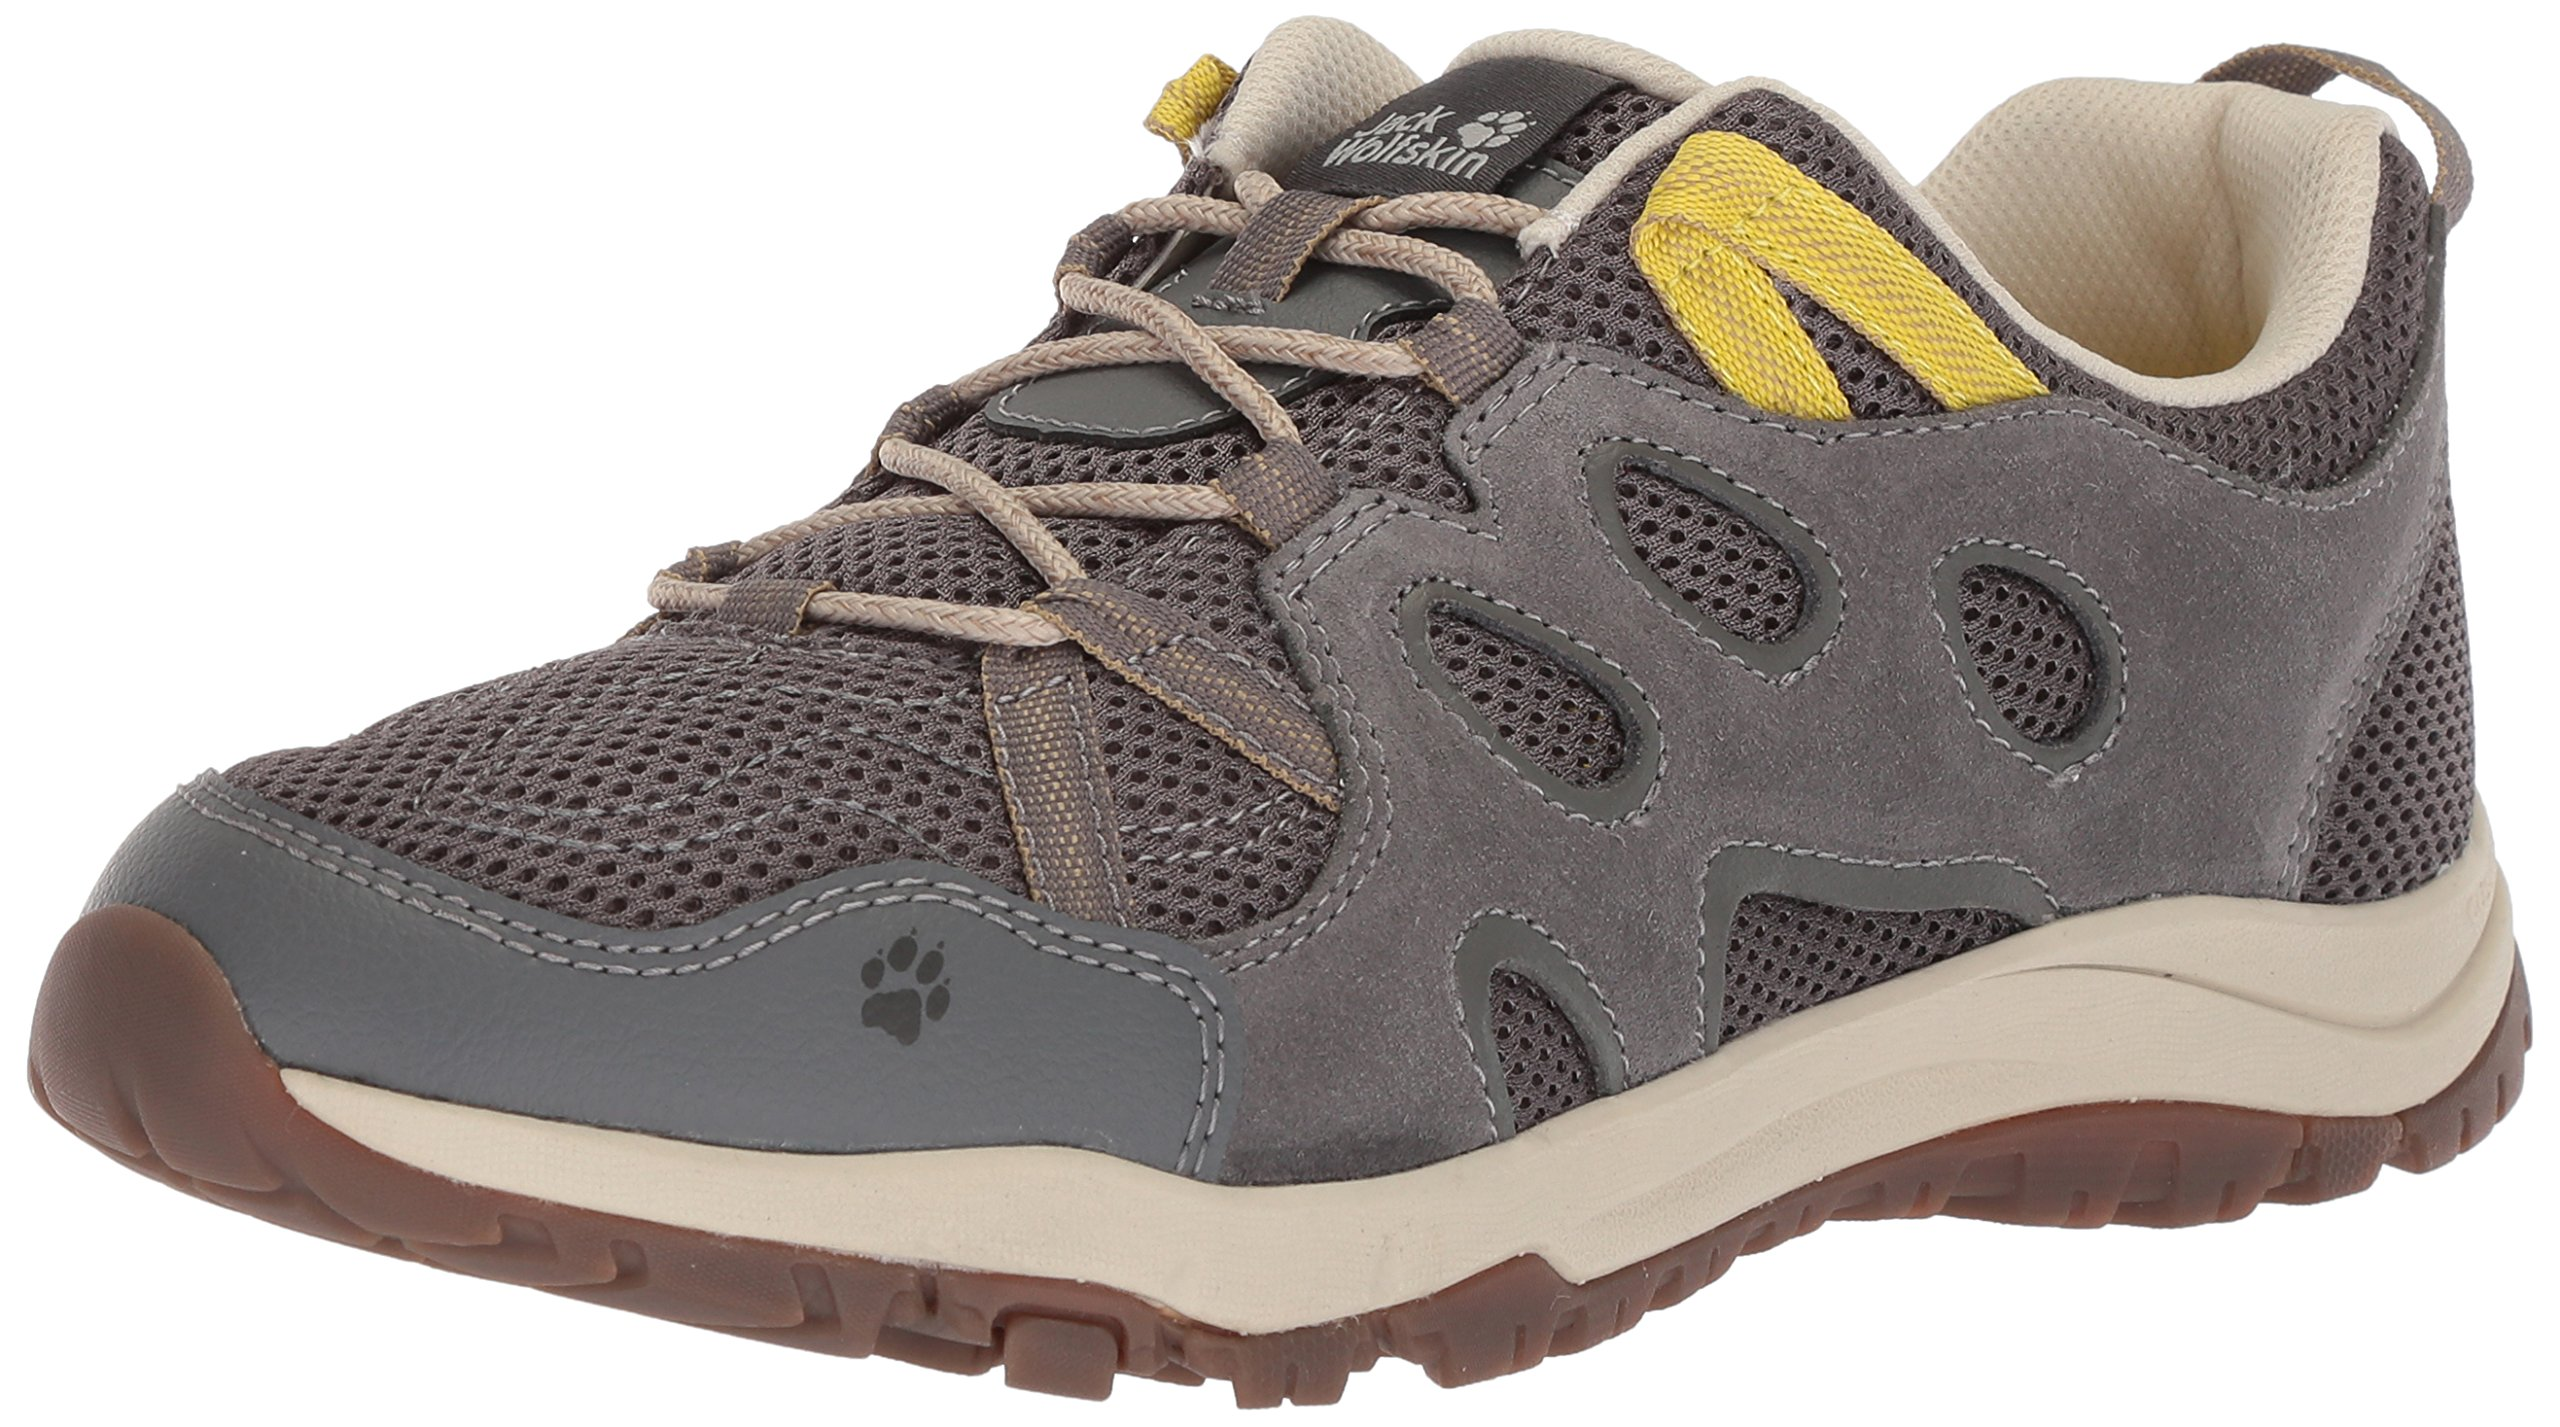 Jack Wolfskin Women's Rocksand Chill Low W Hiking Shoe, Tarmac Grey, US Women's 9 D US